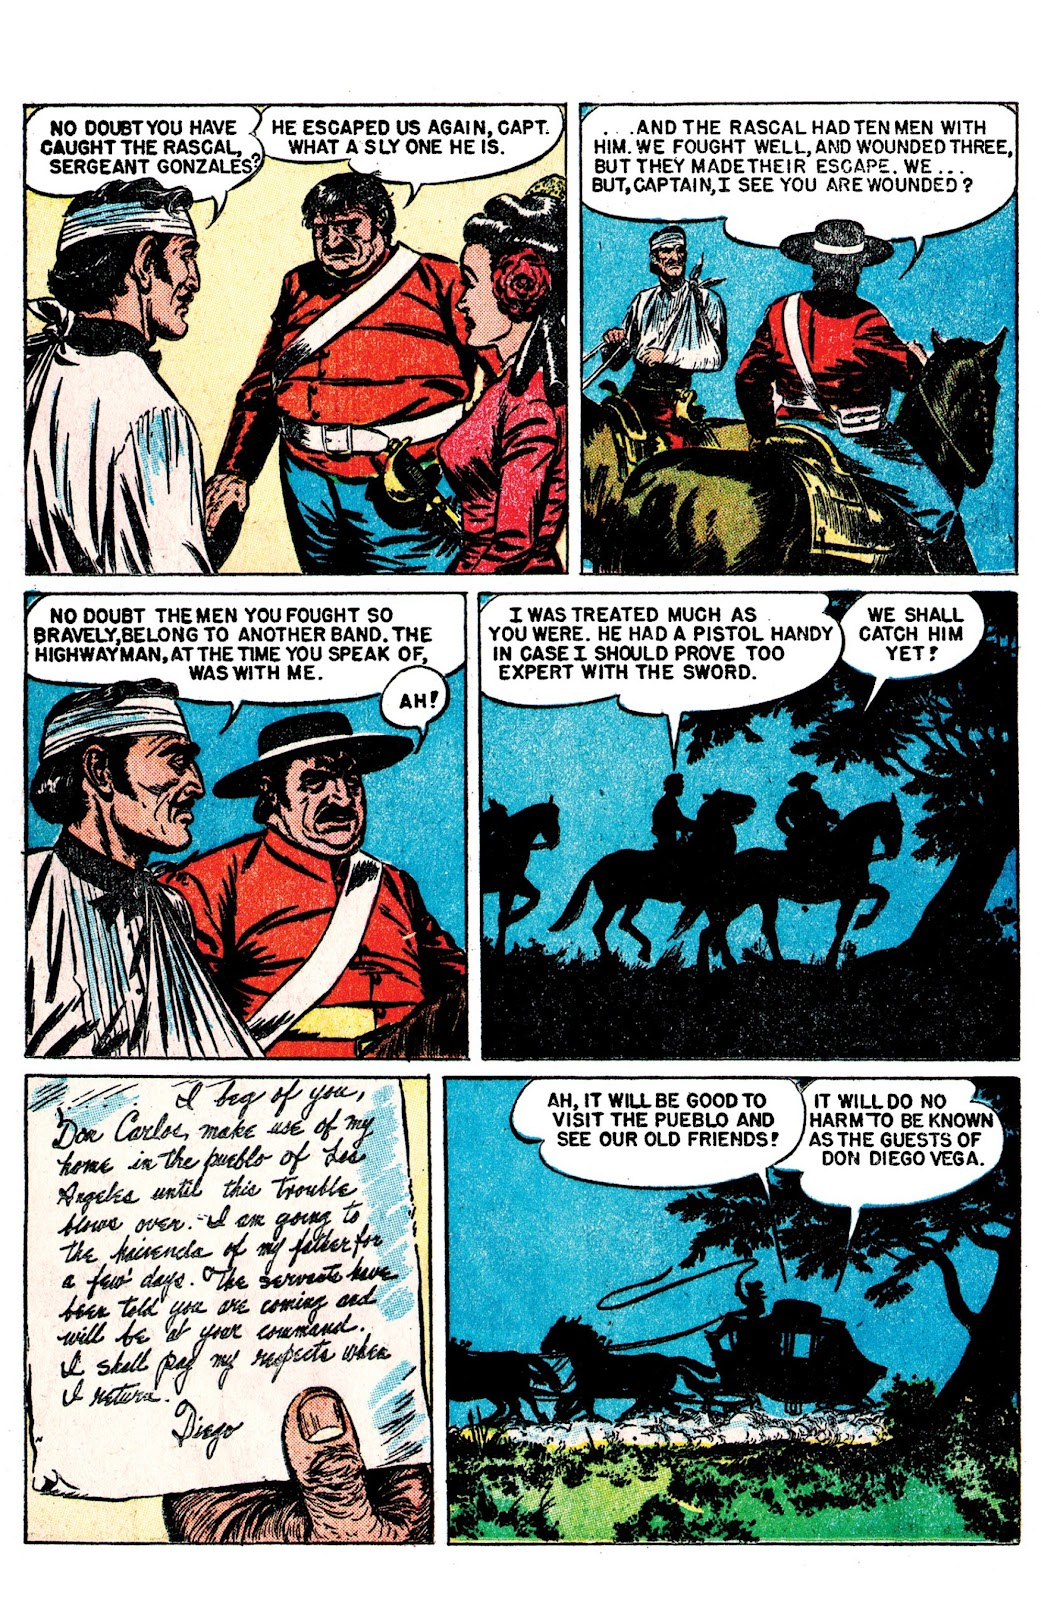 Read online AM Archives: The Mark of Zorro #1 1949 Dell Edition comic -  Issue #1 1949 Dell Edition Full - 16